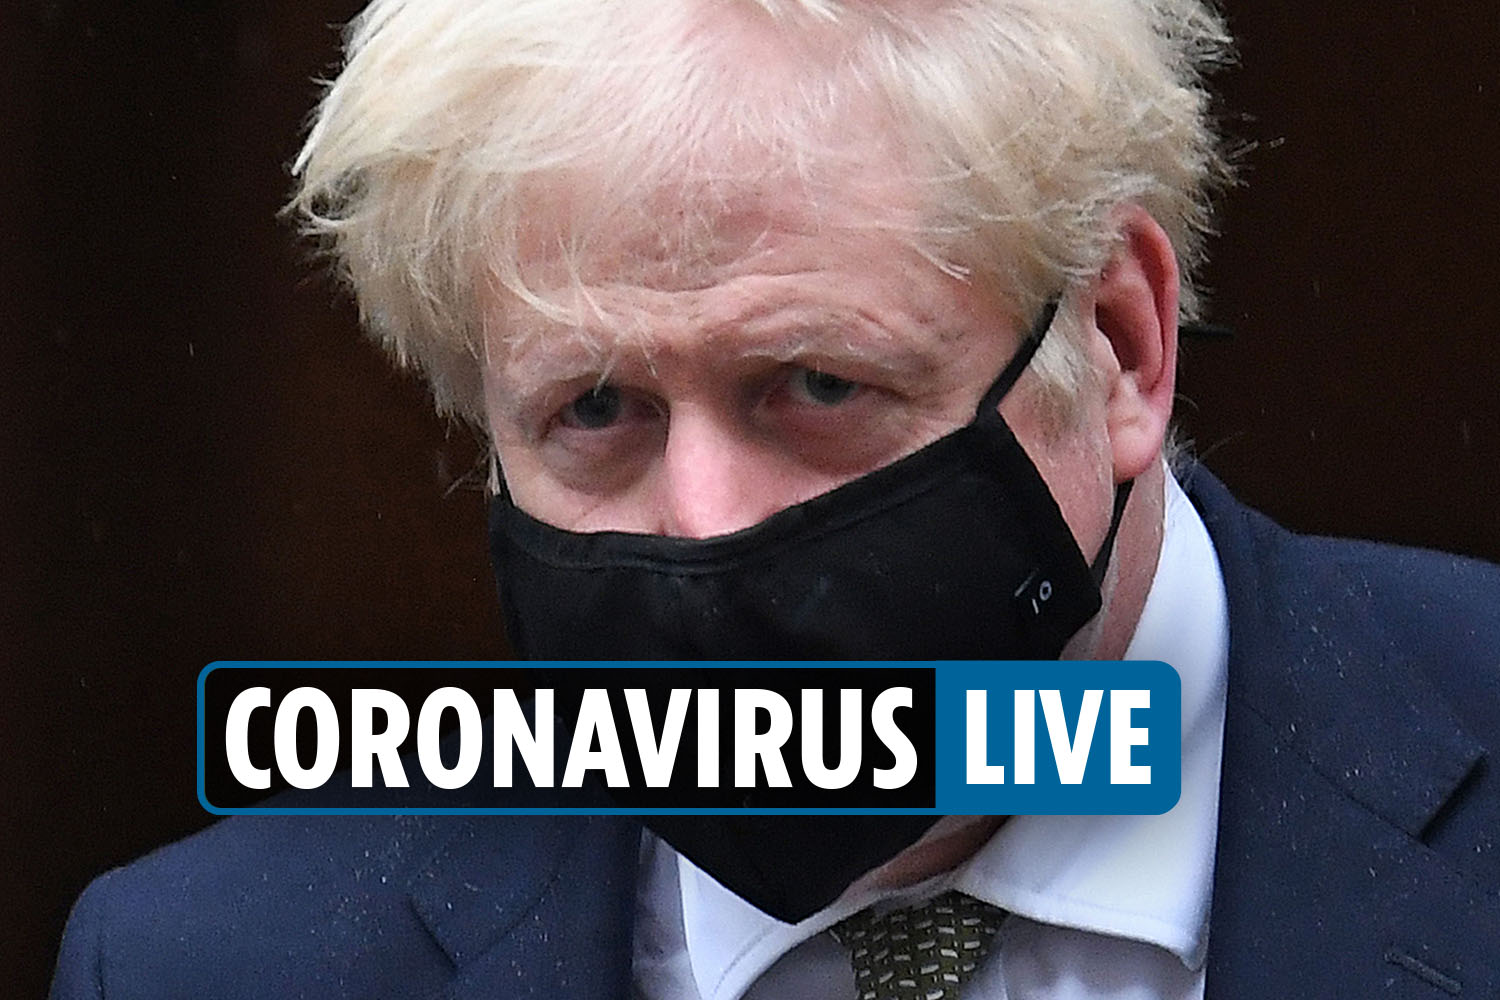 Coronavirus UK news – Manchester could be forced into Tier 3 in days as Boris offers '£100m' to break deadlock in North